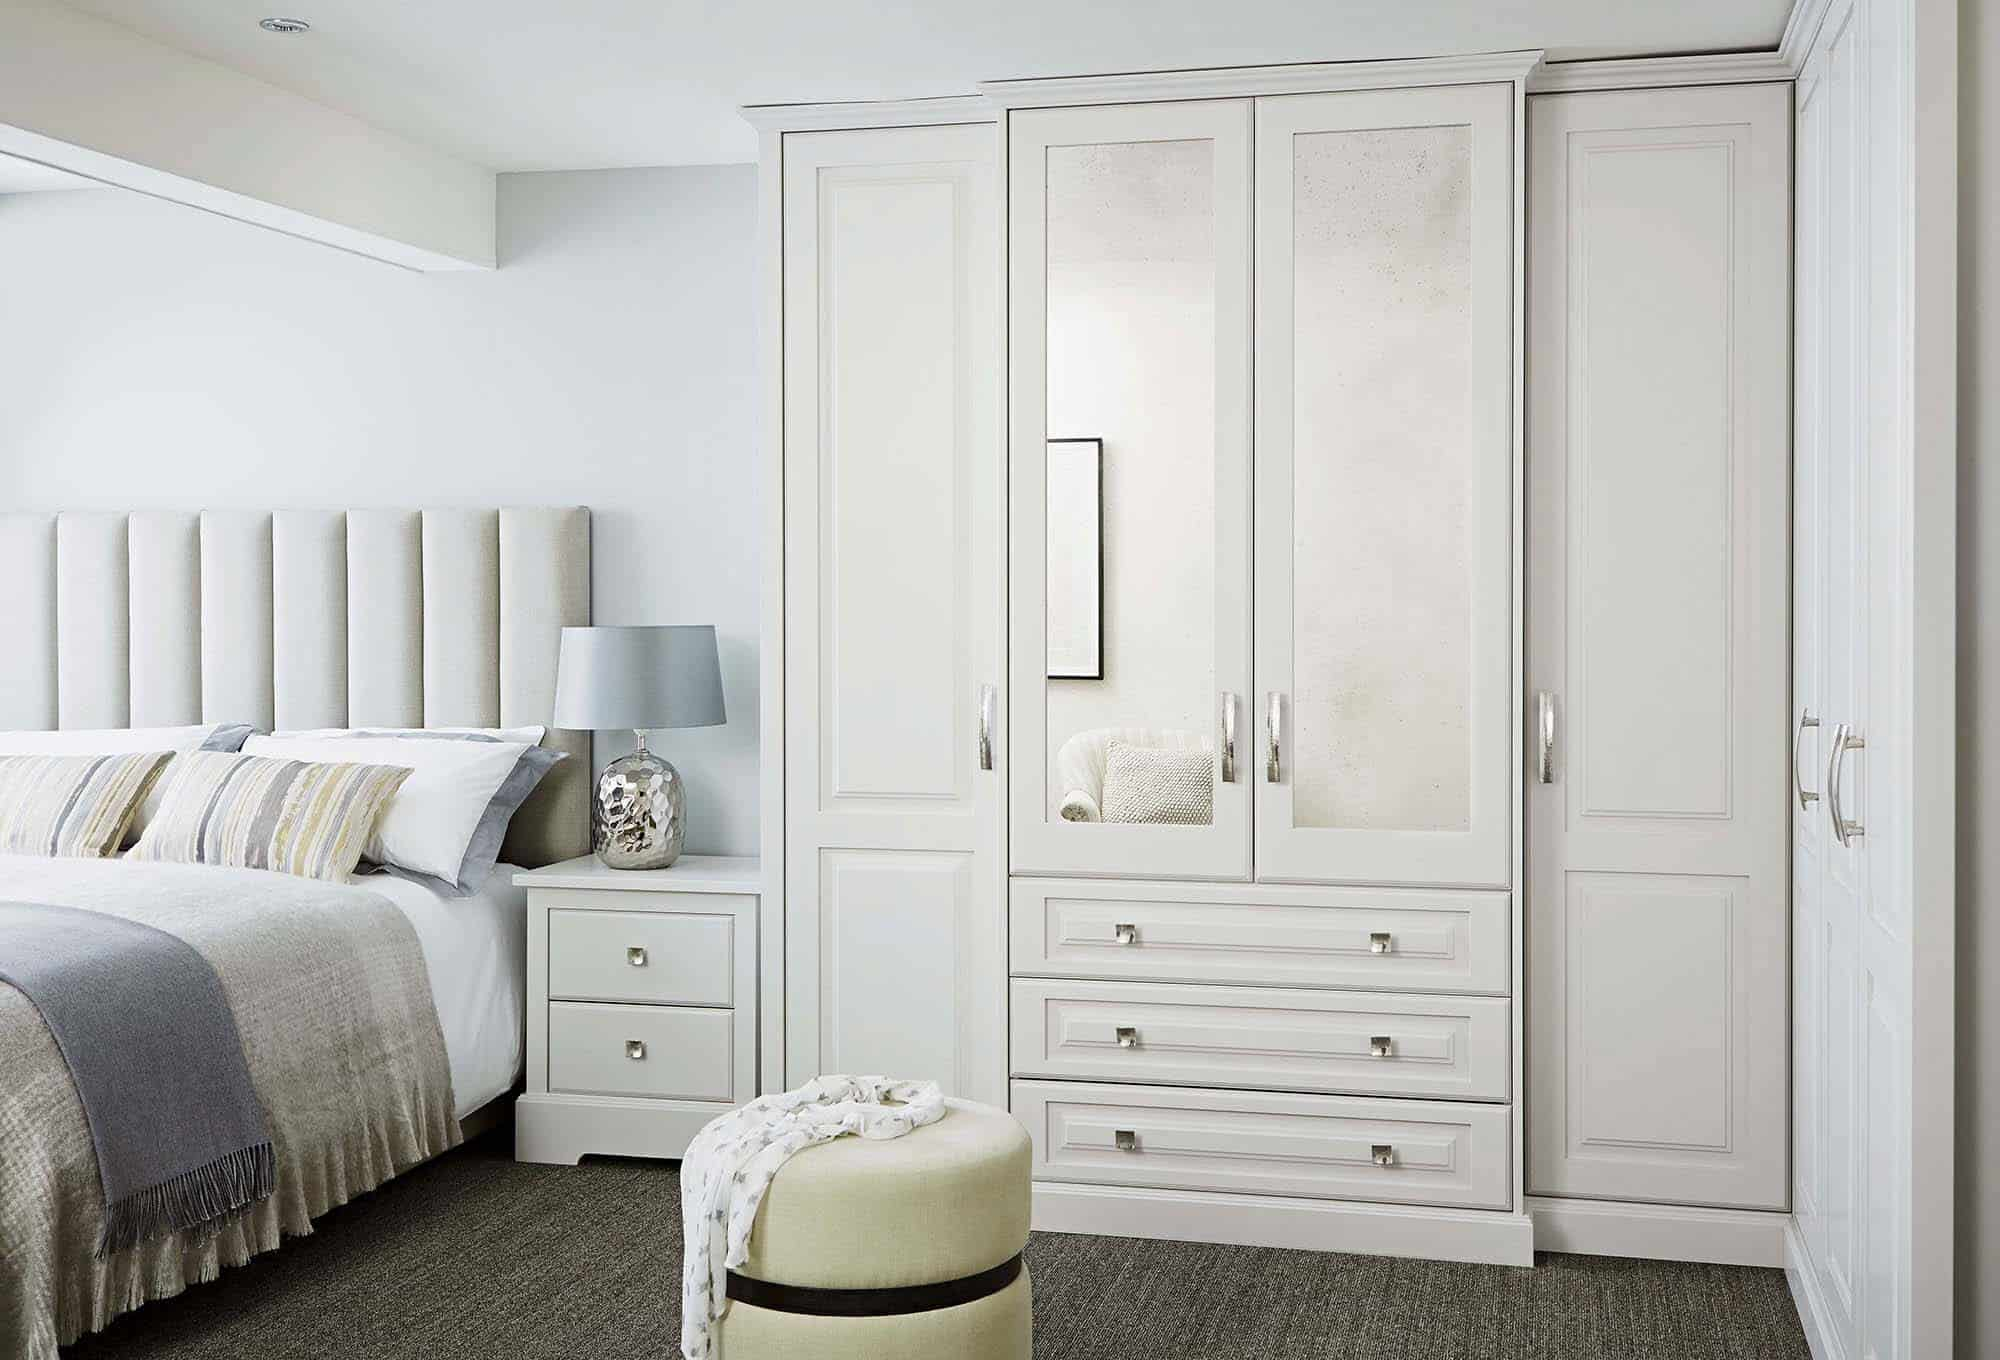 super popular c7c3e 39640 Artisan Bedrooms | John Lewis of Hungerford